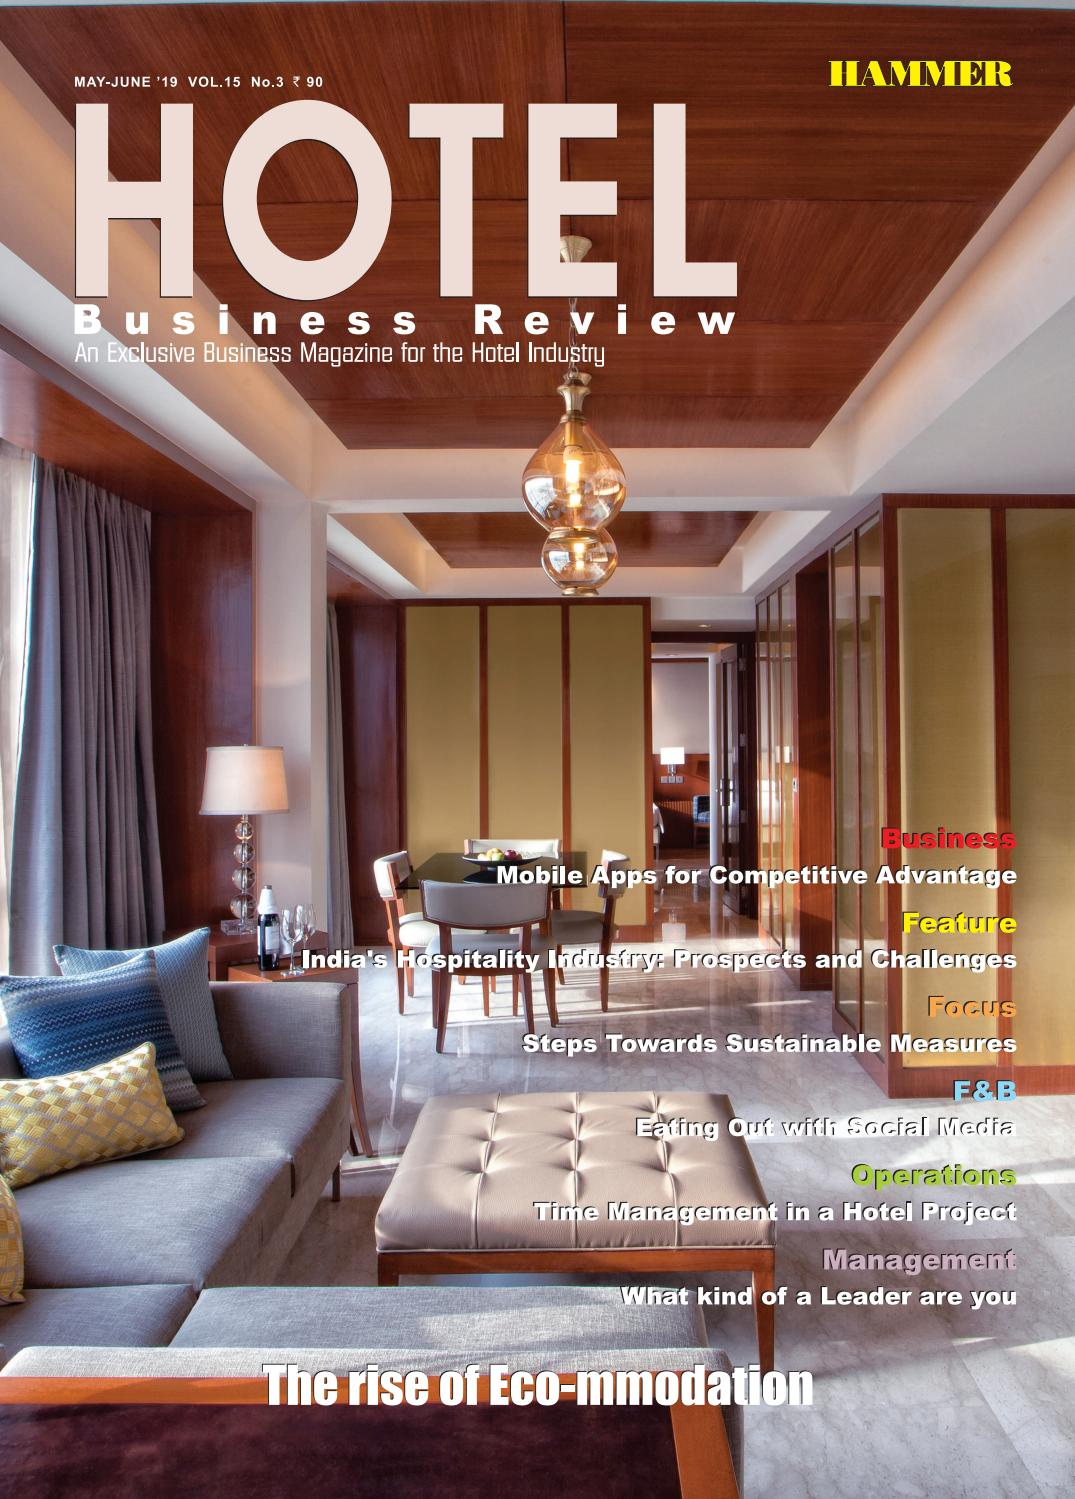 Hotel Business Review May June 2019 By Hammer Publishers